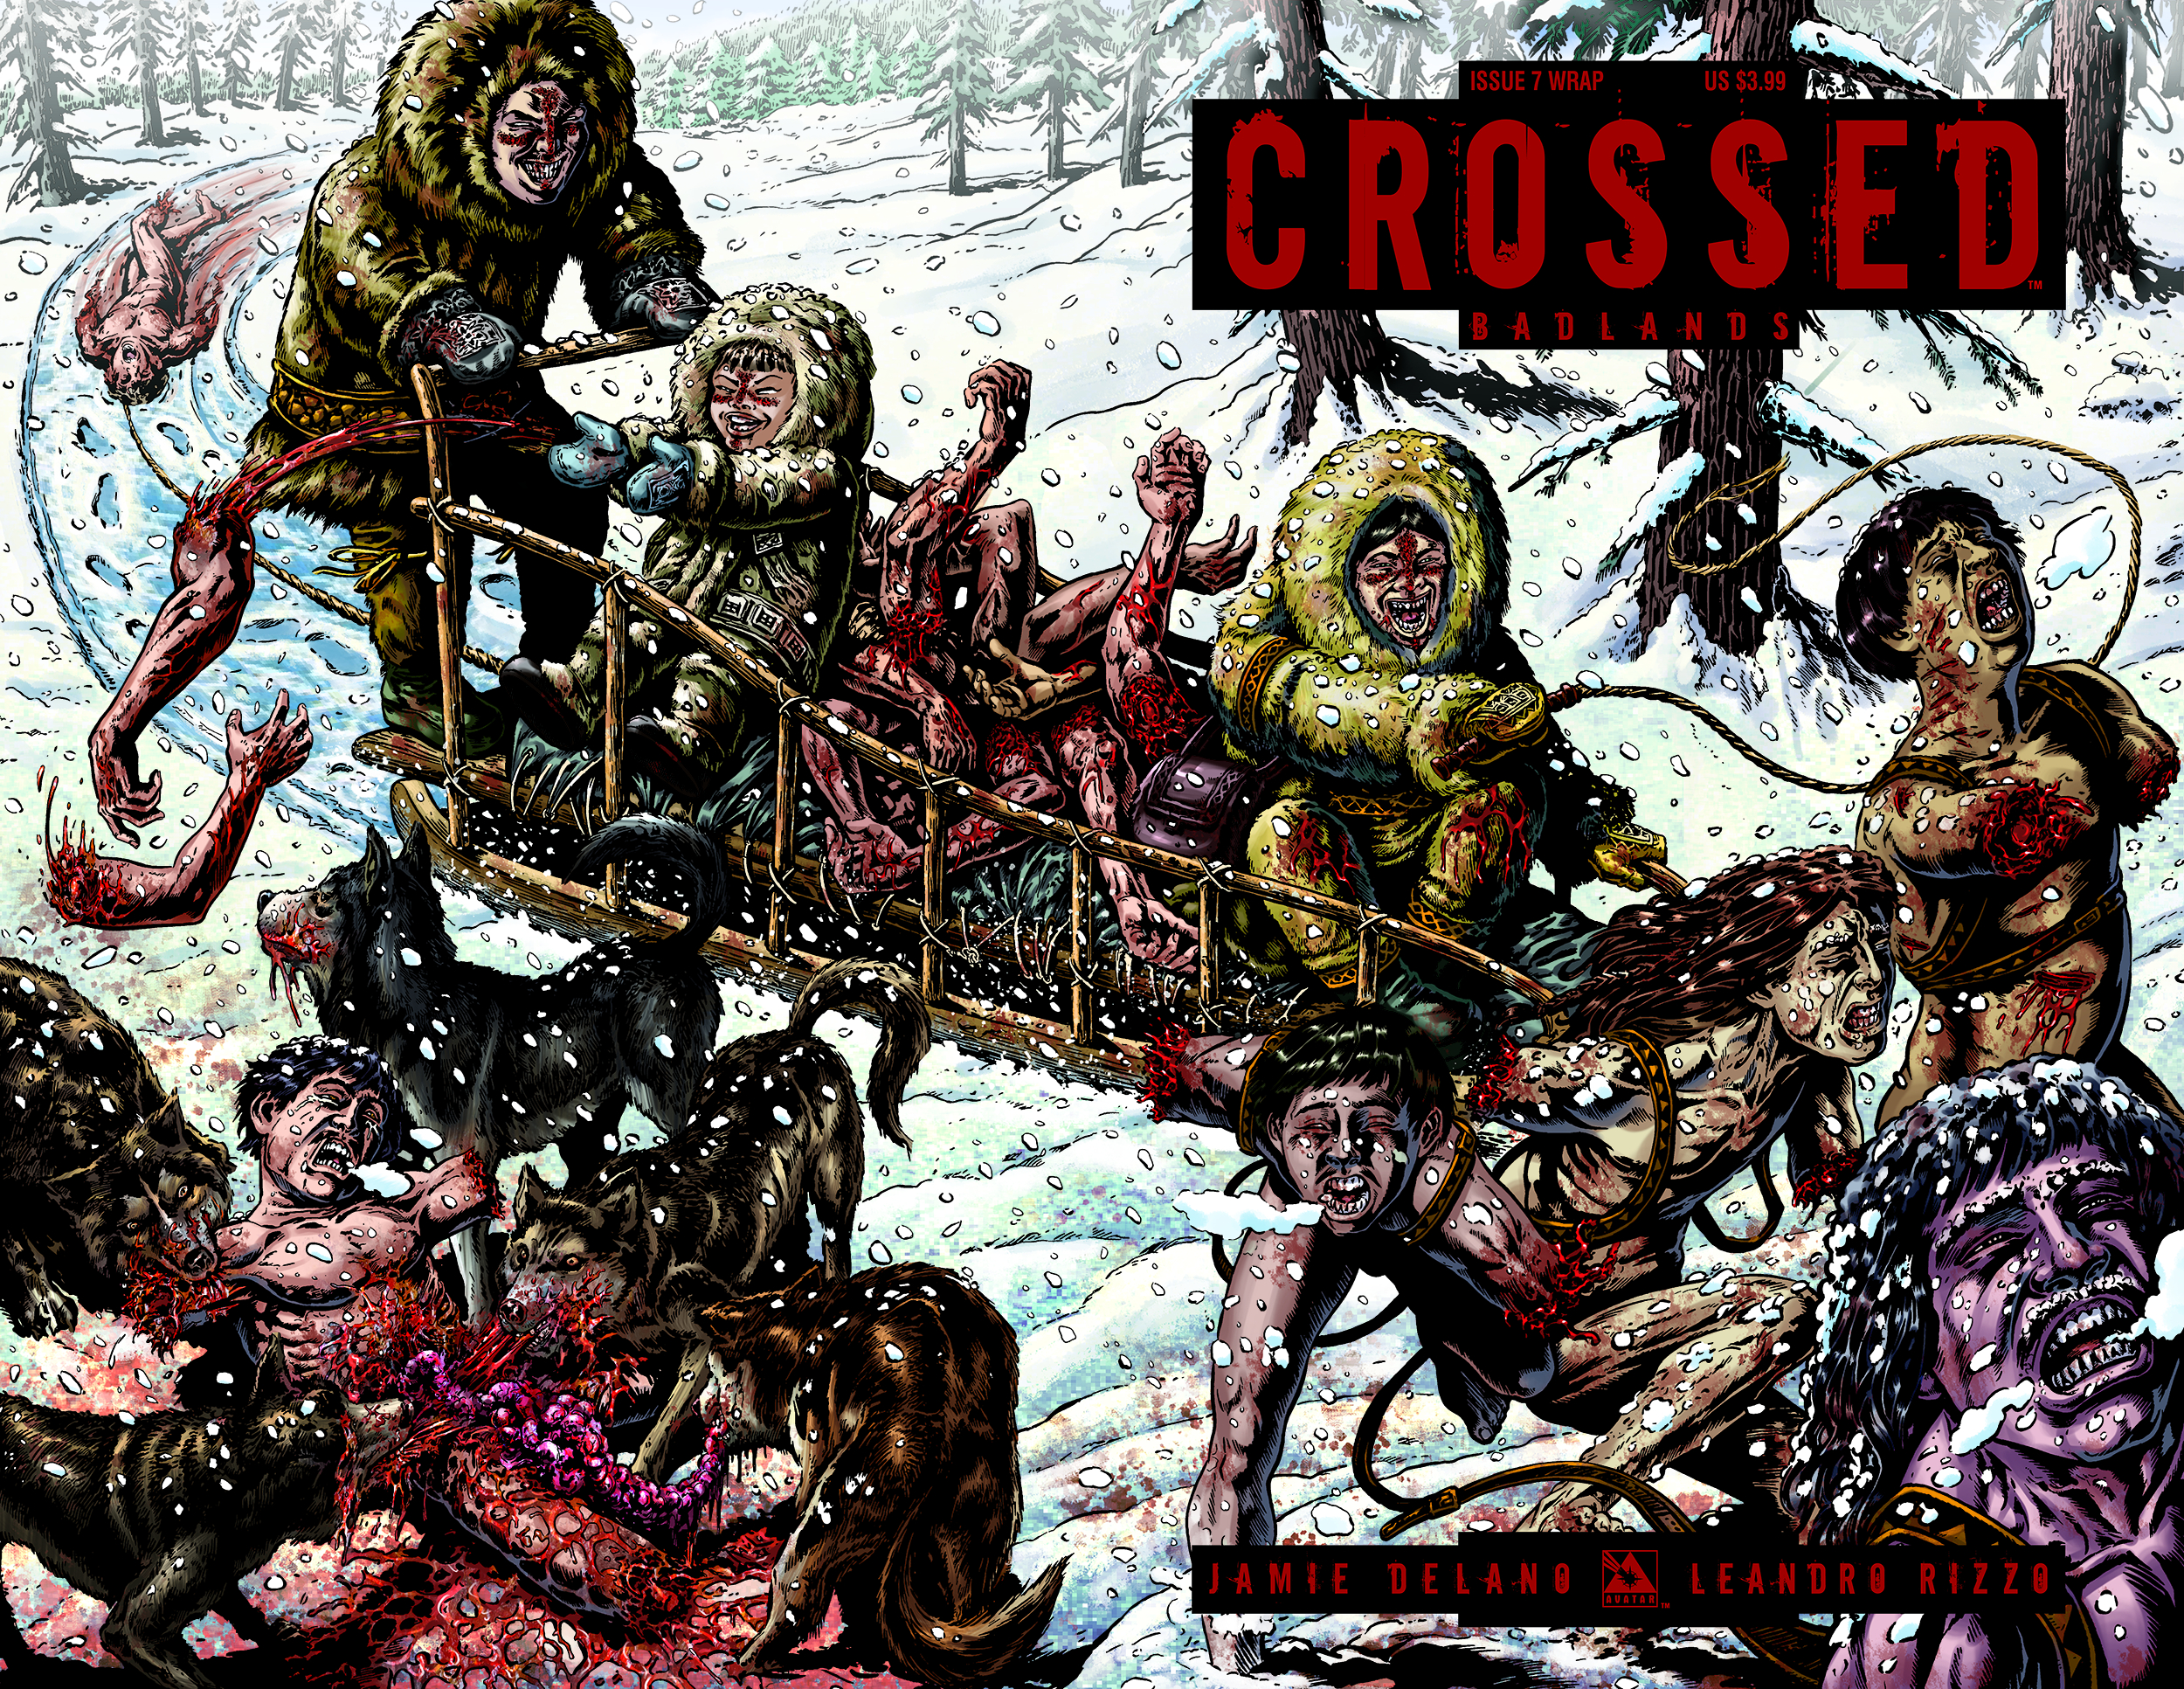 CROSSED BADLANDS #7 WRAP CVR (MR)